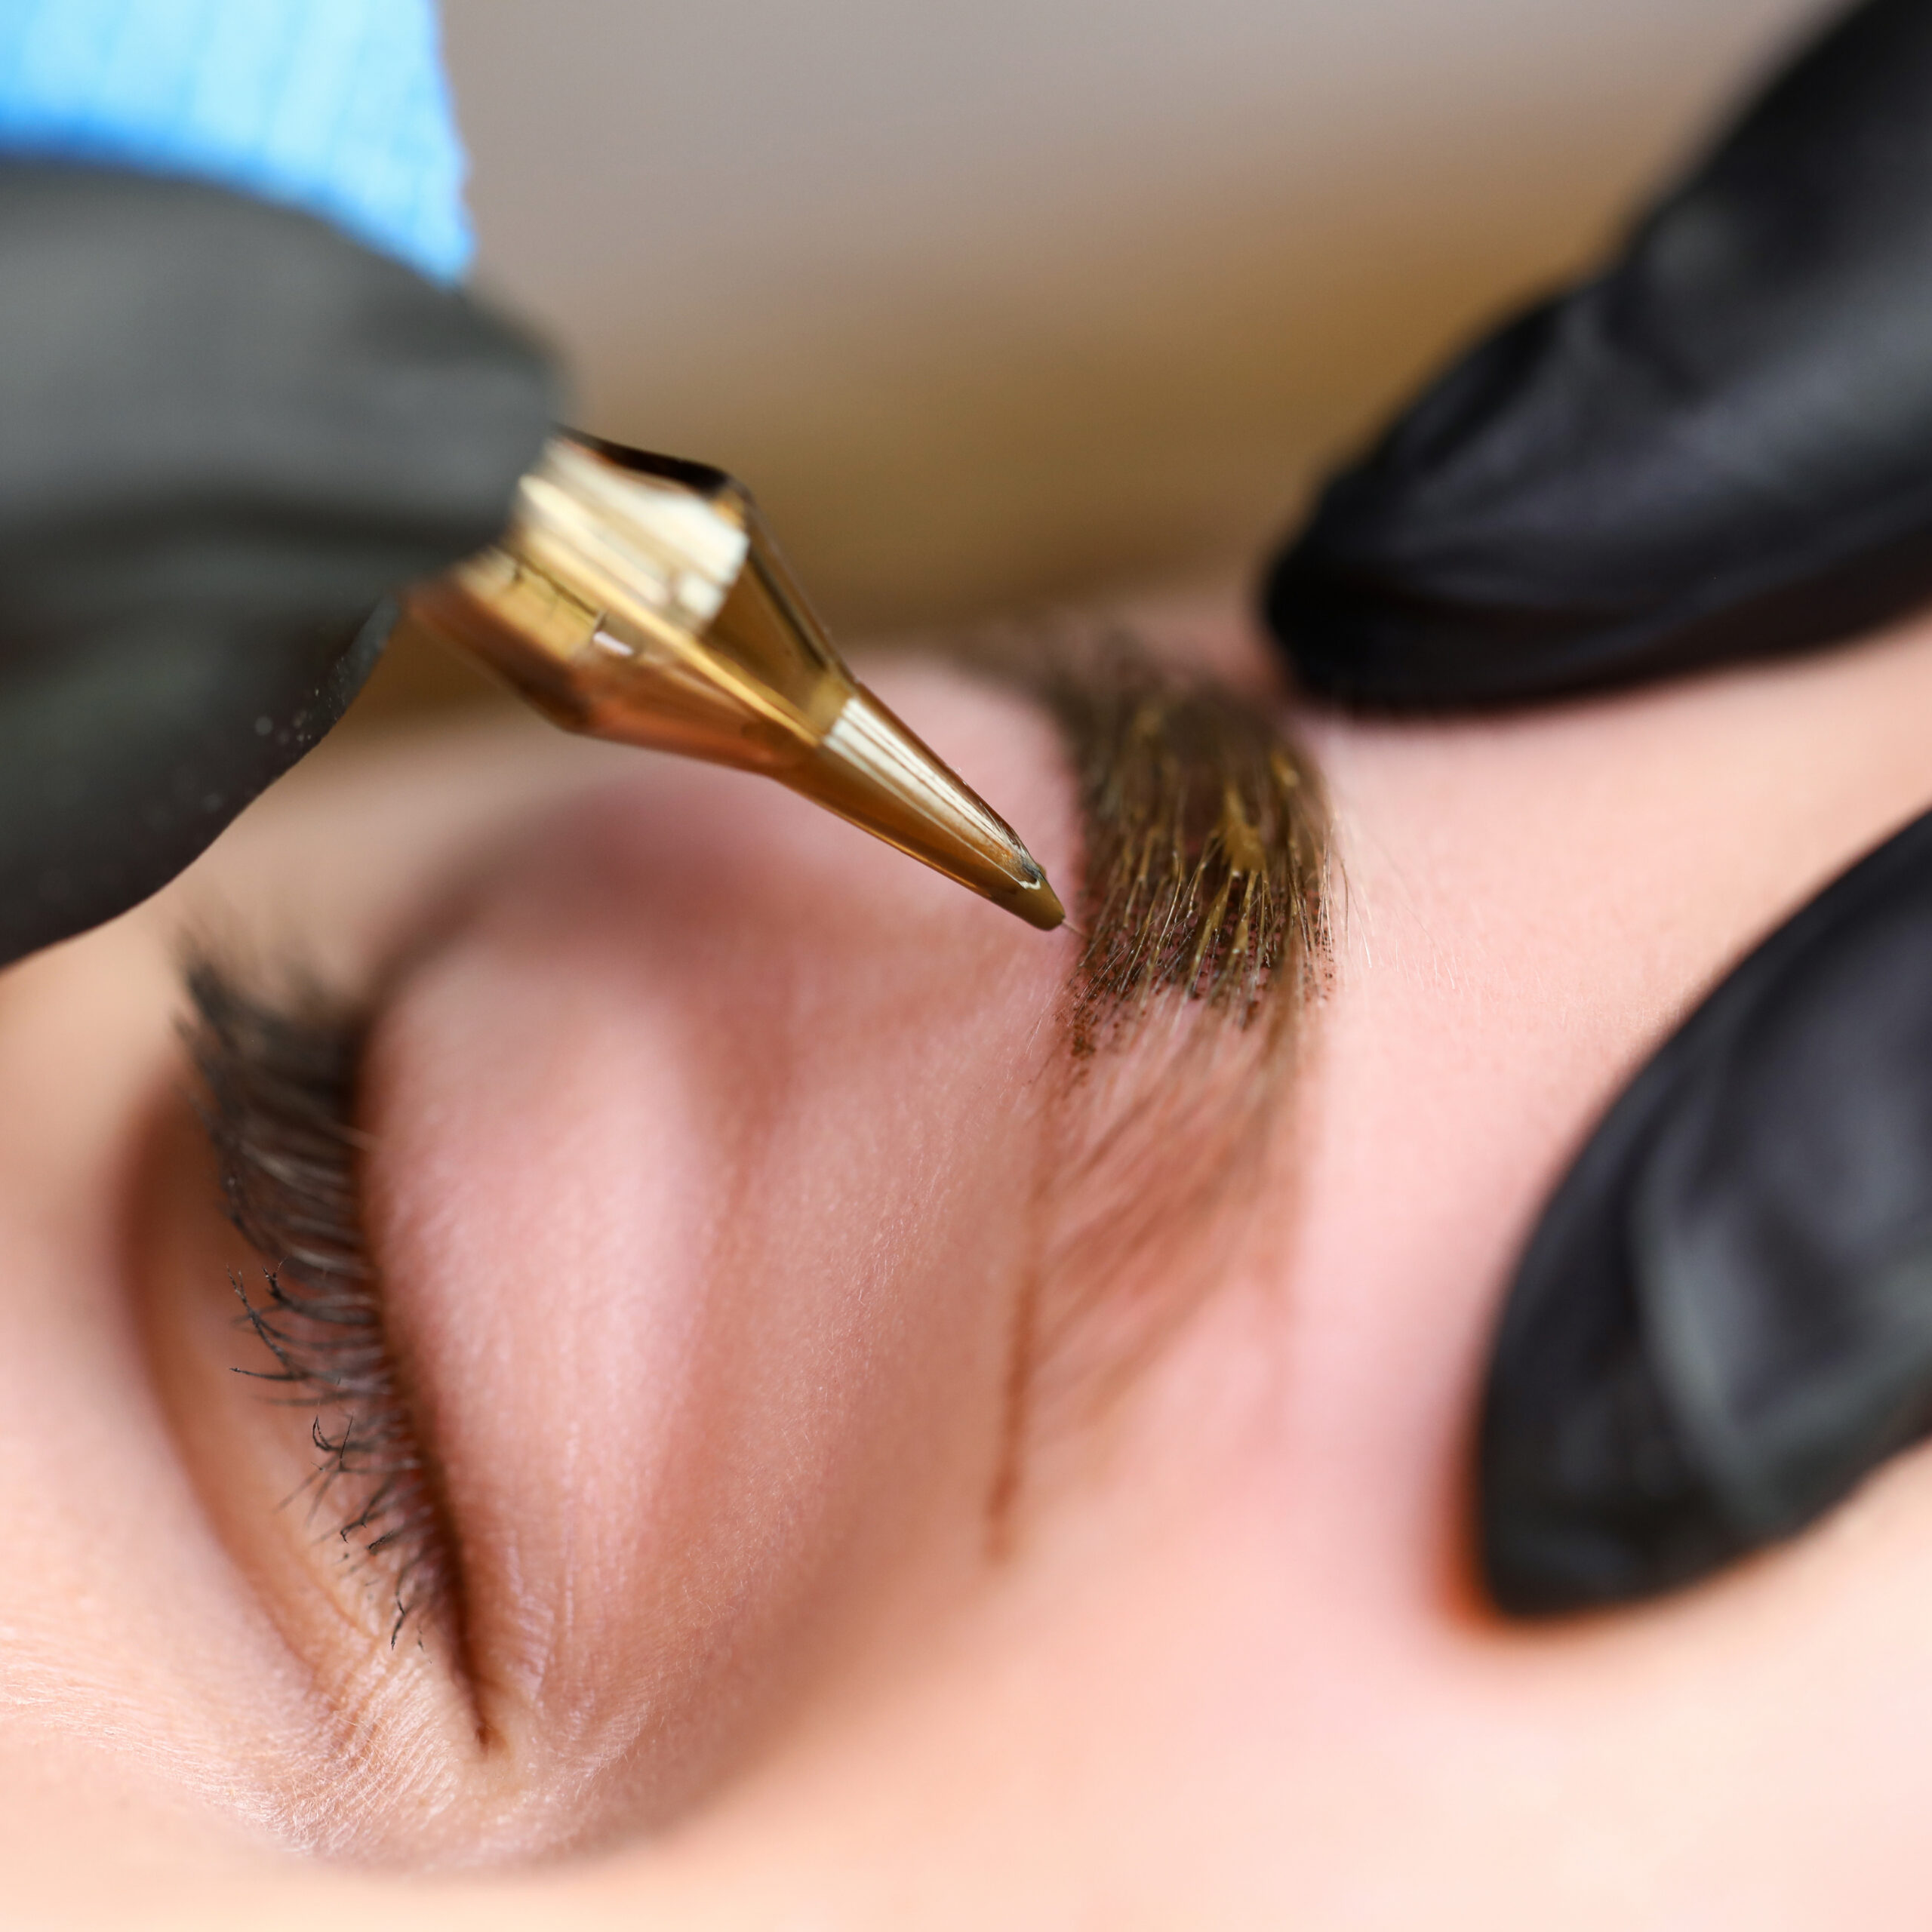 Beauty masters hands do permanent eyebrow makeup. Minimal trauma to skin. Eyebrow microblading is performed using manipulator handle and special nozzle with needles. Cosmetologist skill level